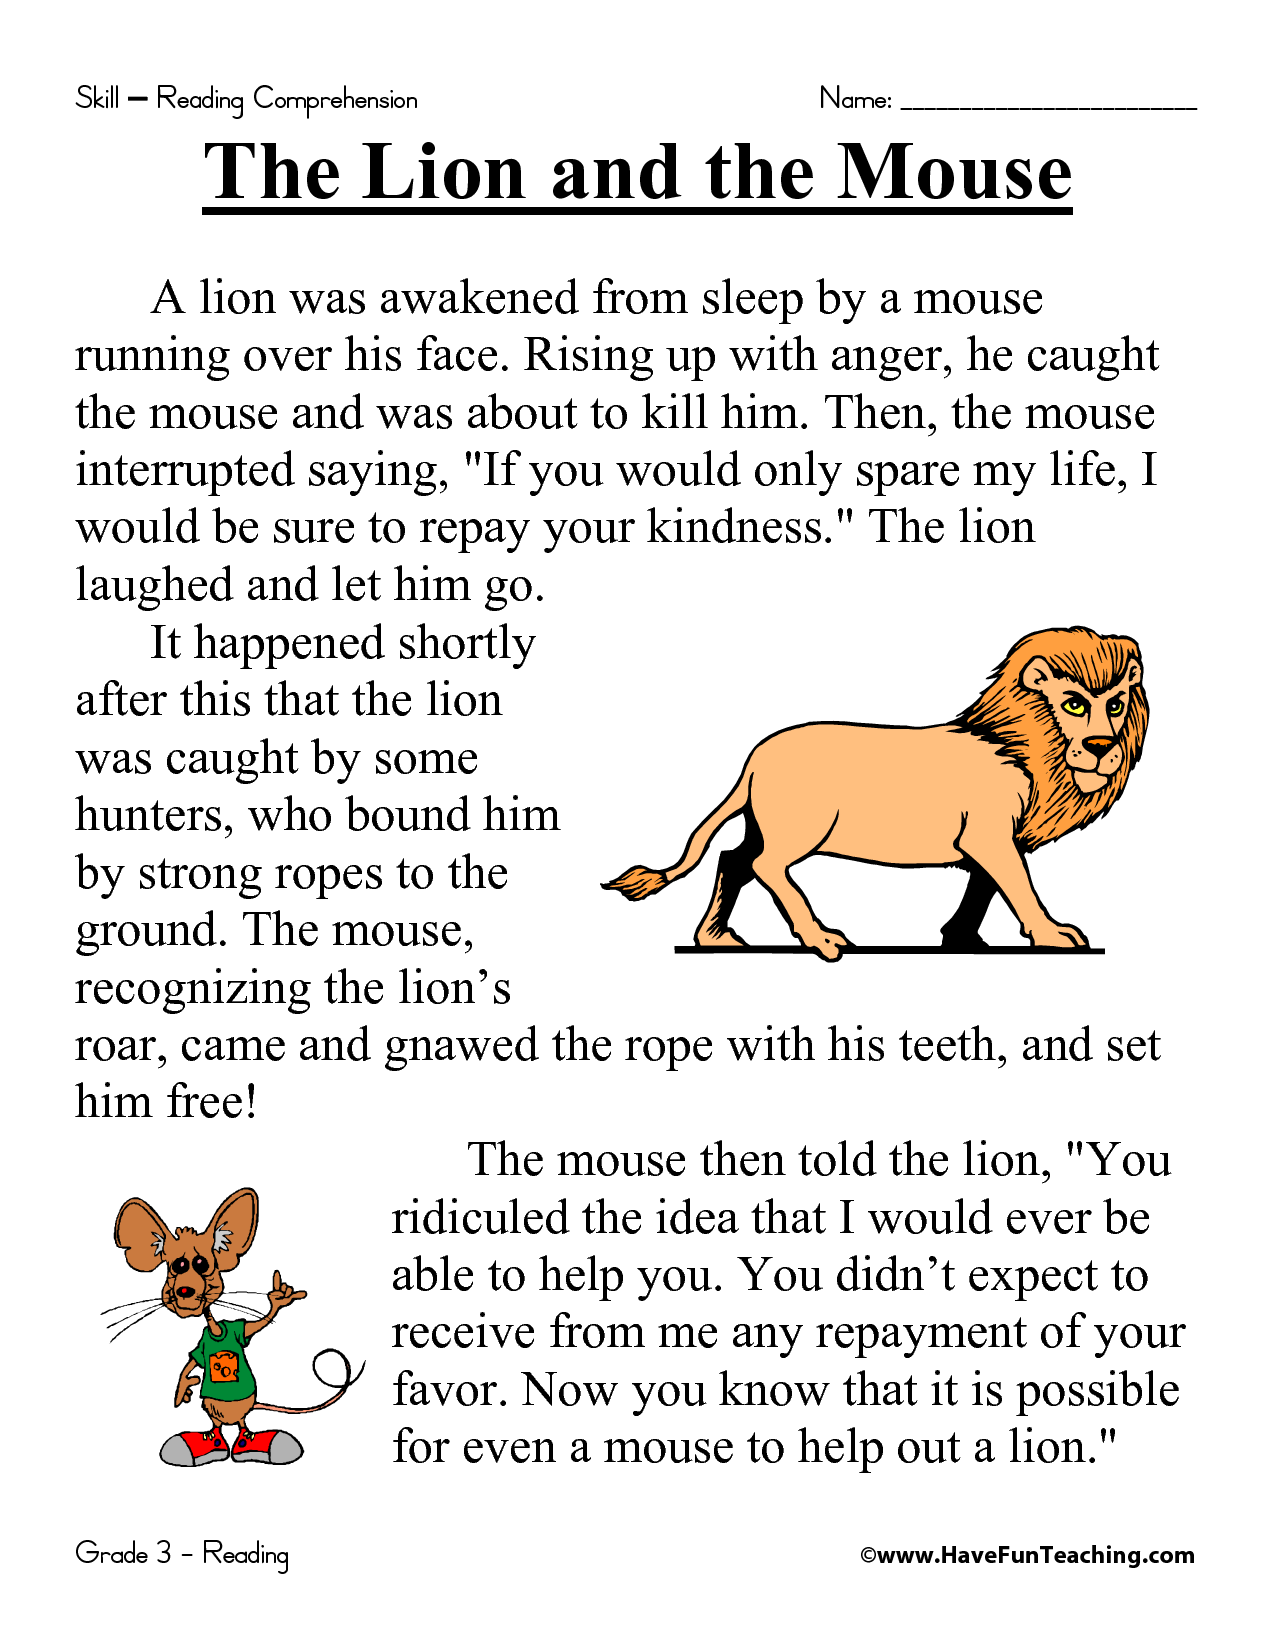 Worksheet 1st Grade Reading Passages With Questions first grade reading comprehension worksheets the lion and mouse worksheet